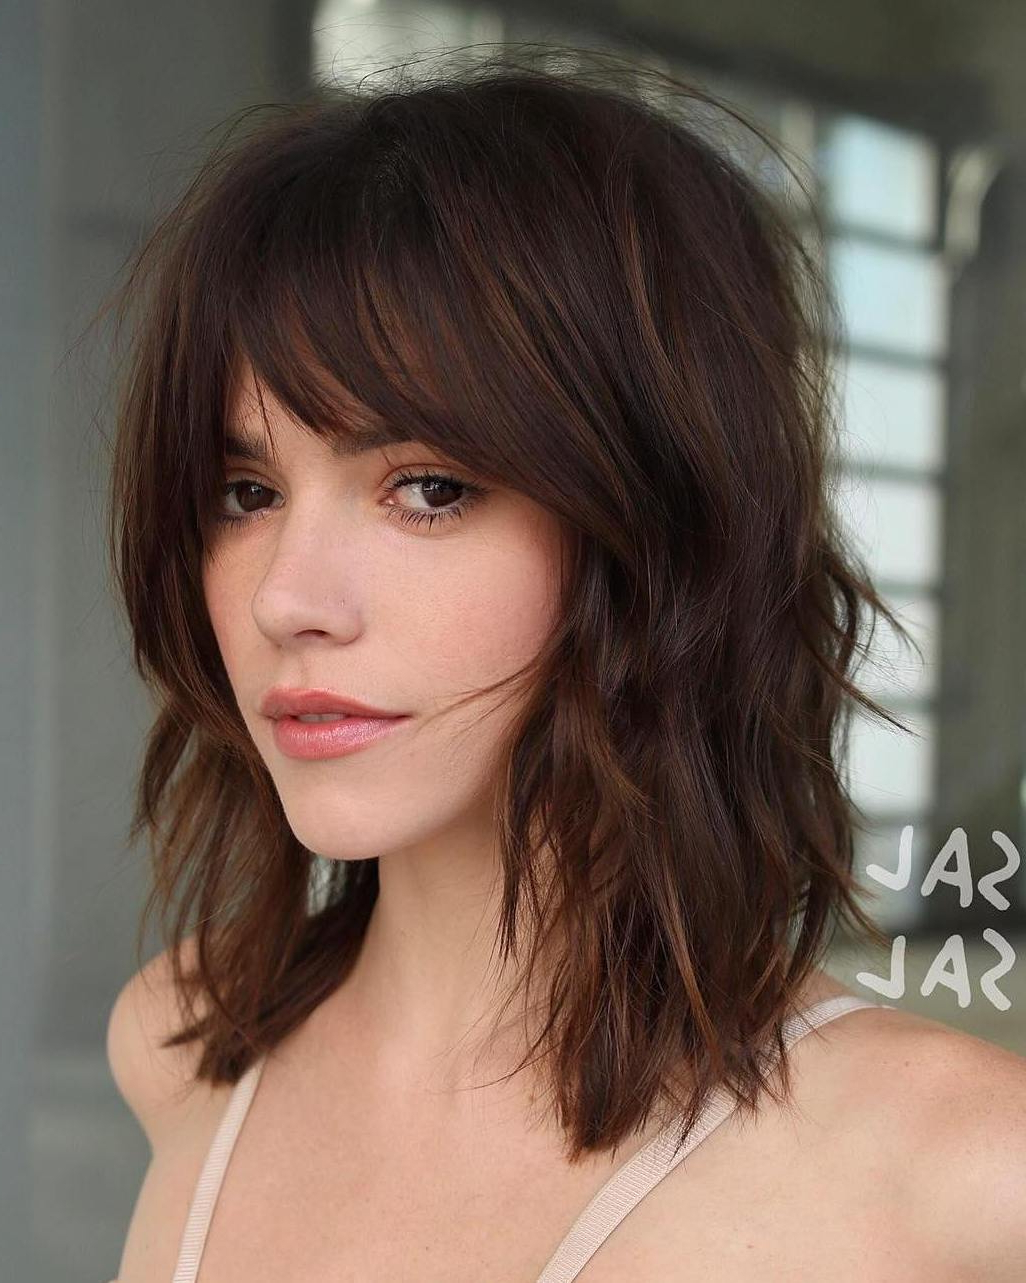 35 Killer Ways To Work Long Bob Haircuts For 2019 Within Feathered Haircuts With Angled Bangs (View 10 of 20)